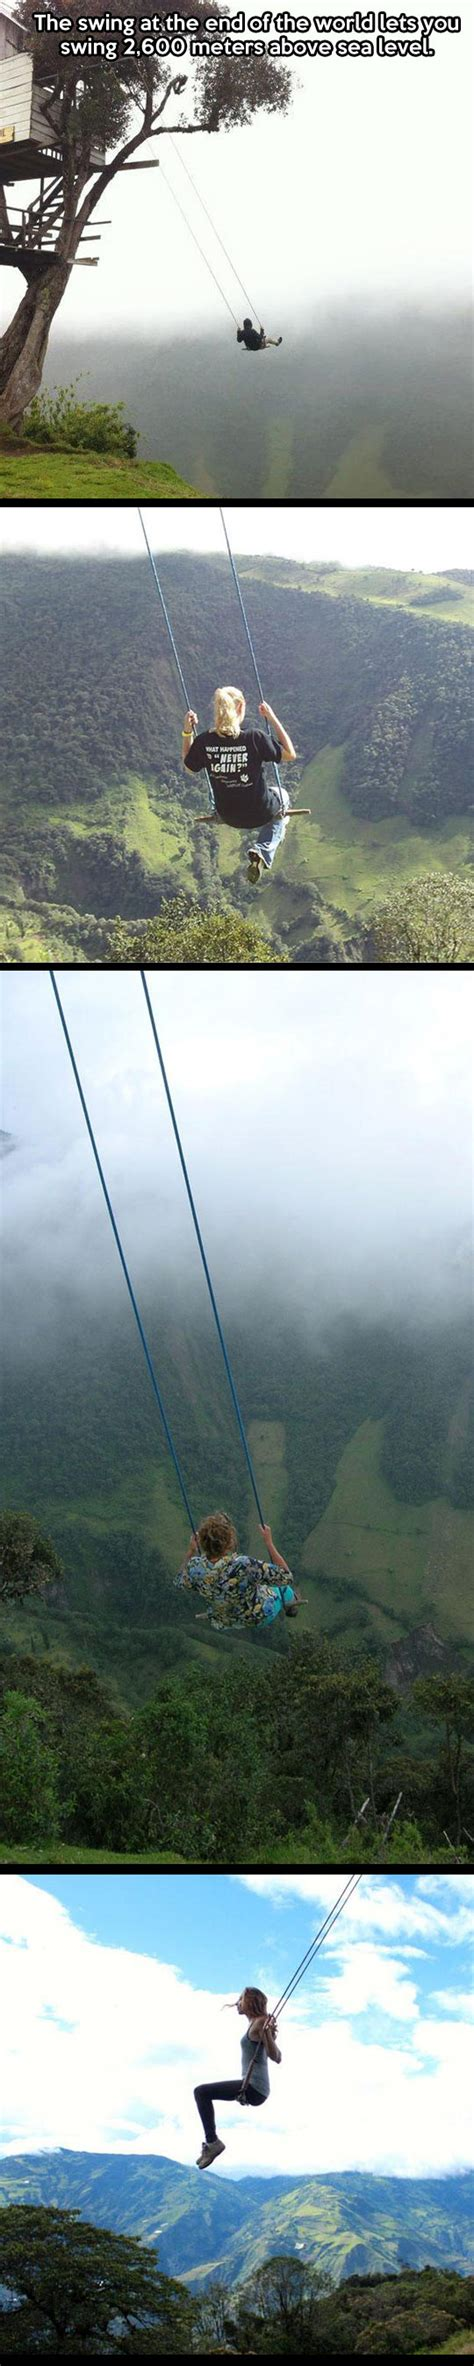 the swing at the end of the world ecuador the swing at the end of the world